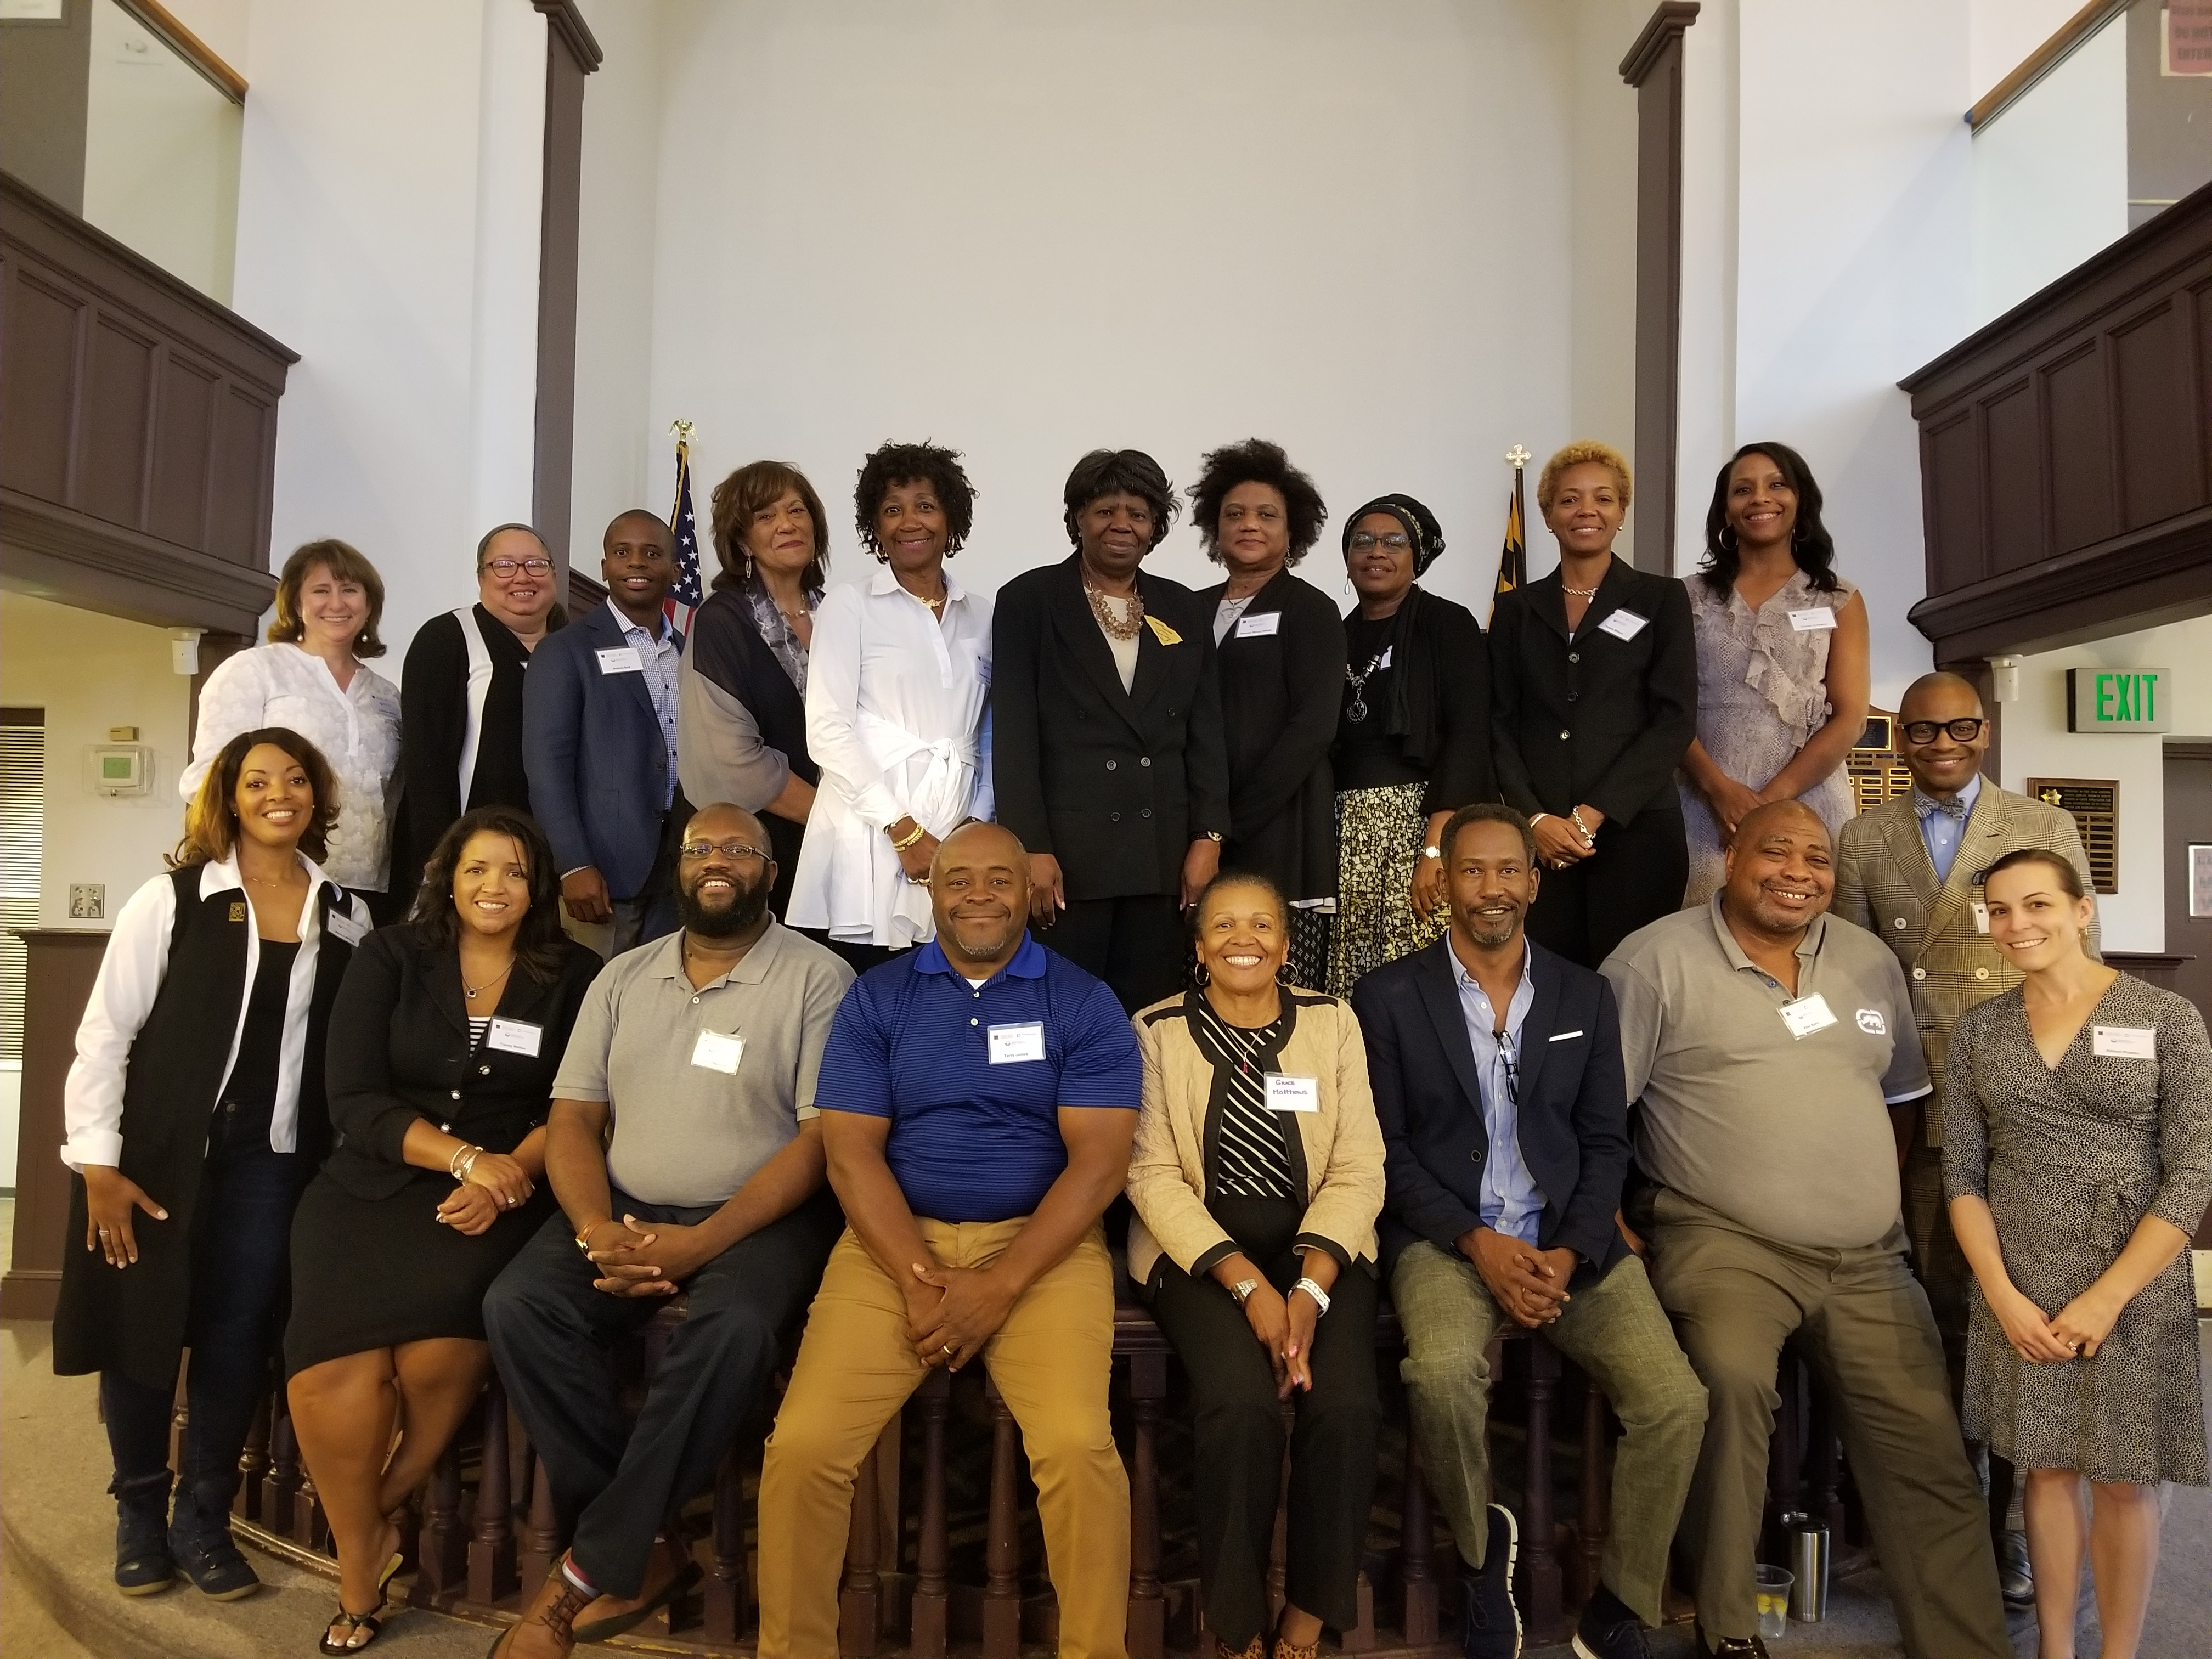 Attendees of the 2018 Annapolis Board Building Training.